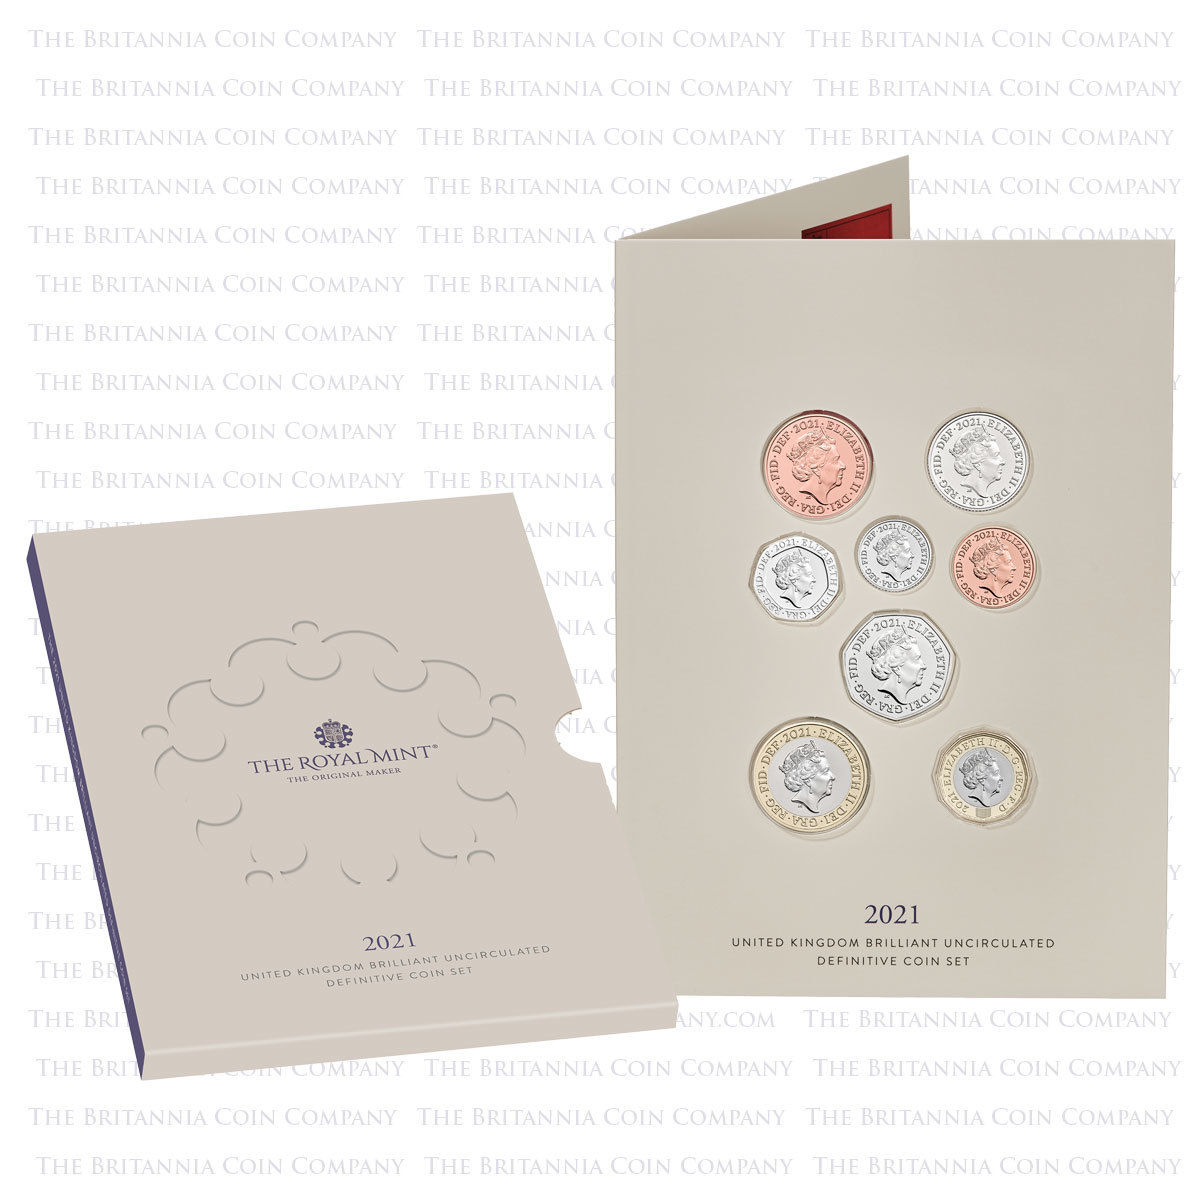 DUW21-2021-UK-Uncirculated-Definitive-Coin-Set-Unboxed